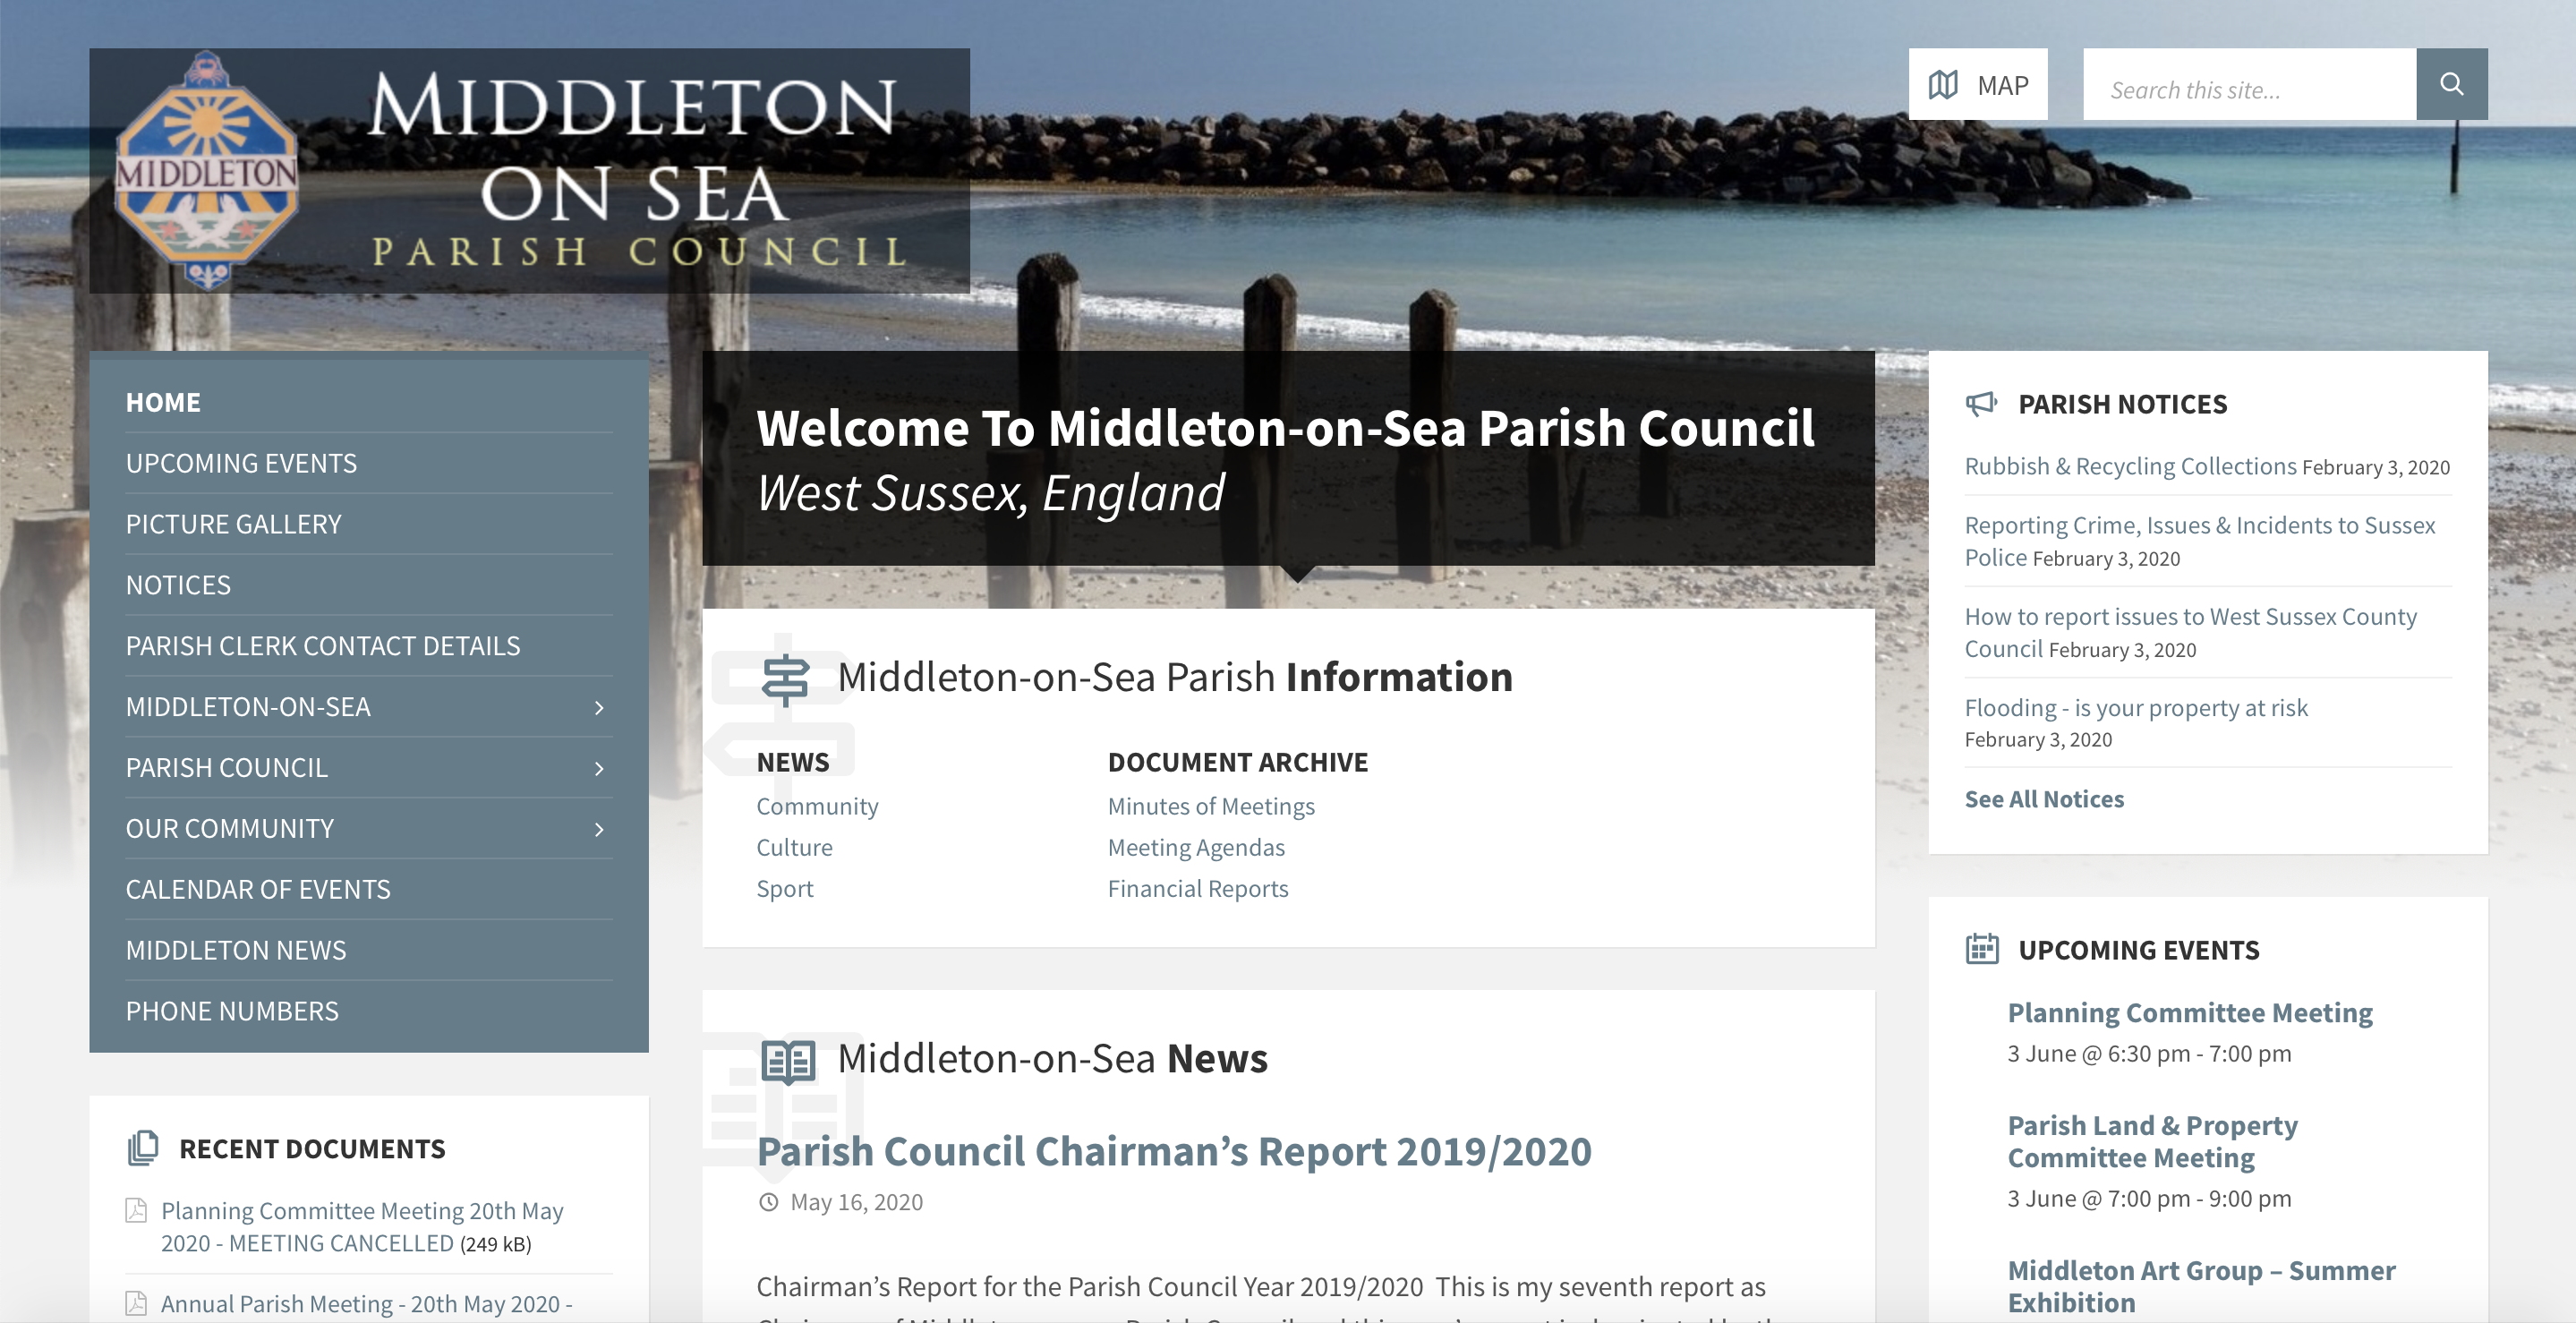 Middleton On Sea Parish Council website